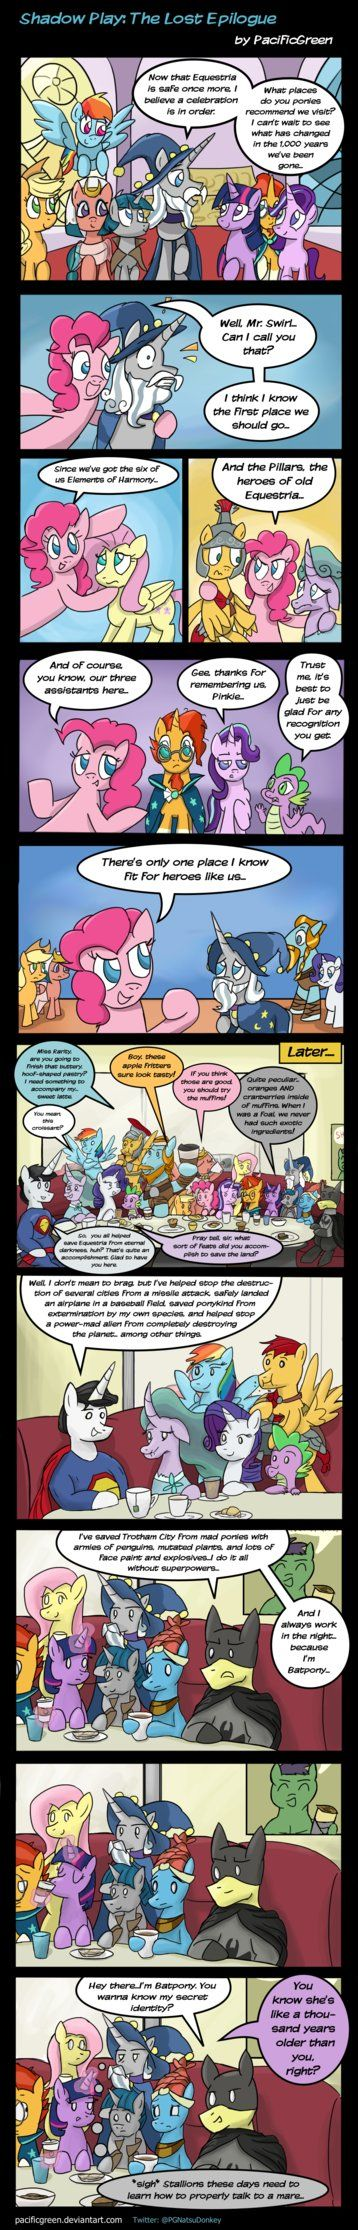 MLP: Shadow Play- The Lost Epilogue by PacificGreen.deviantart.com on @DeviantArt